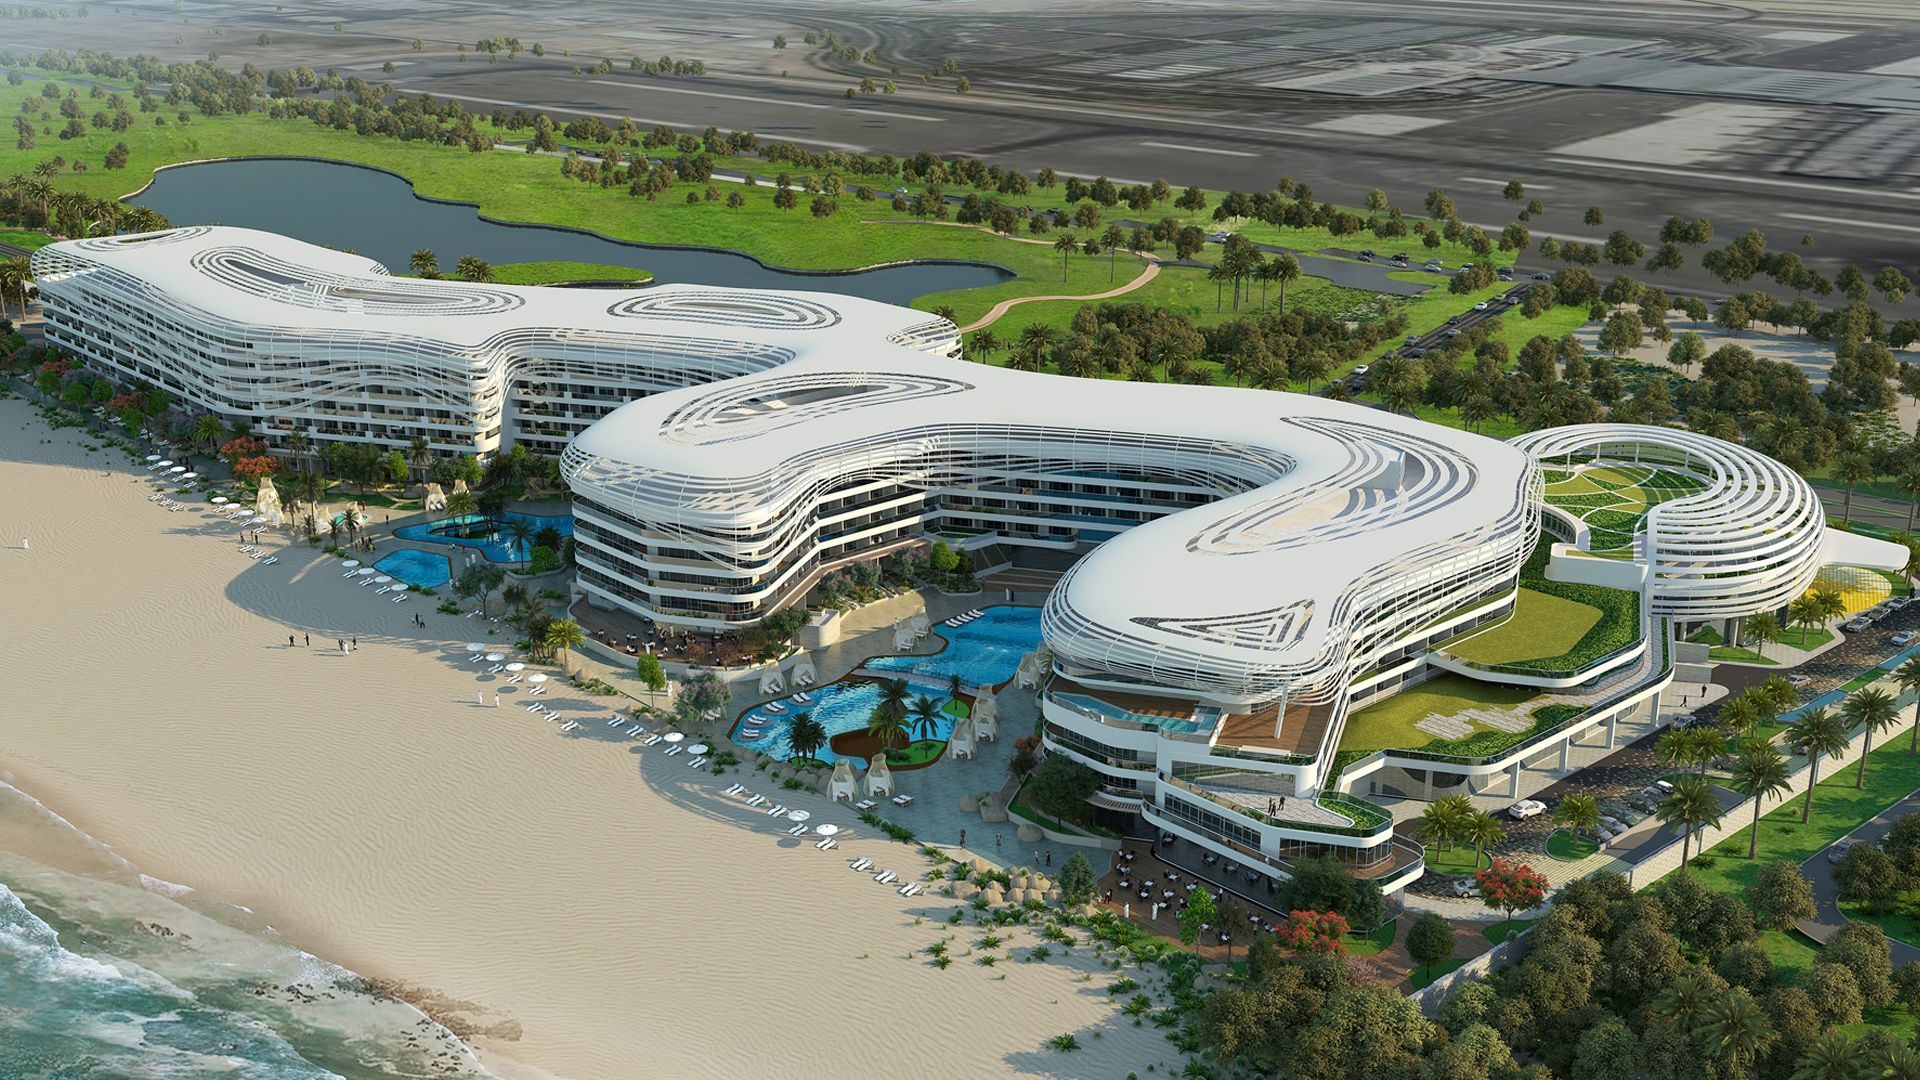 St. Regis Anticipates 271 Rooms and 170 Residences in Muscat